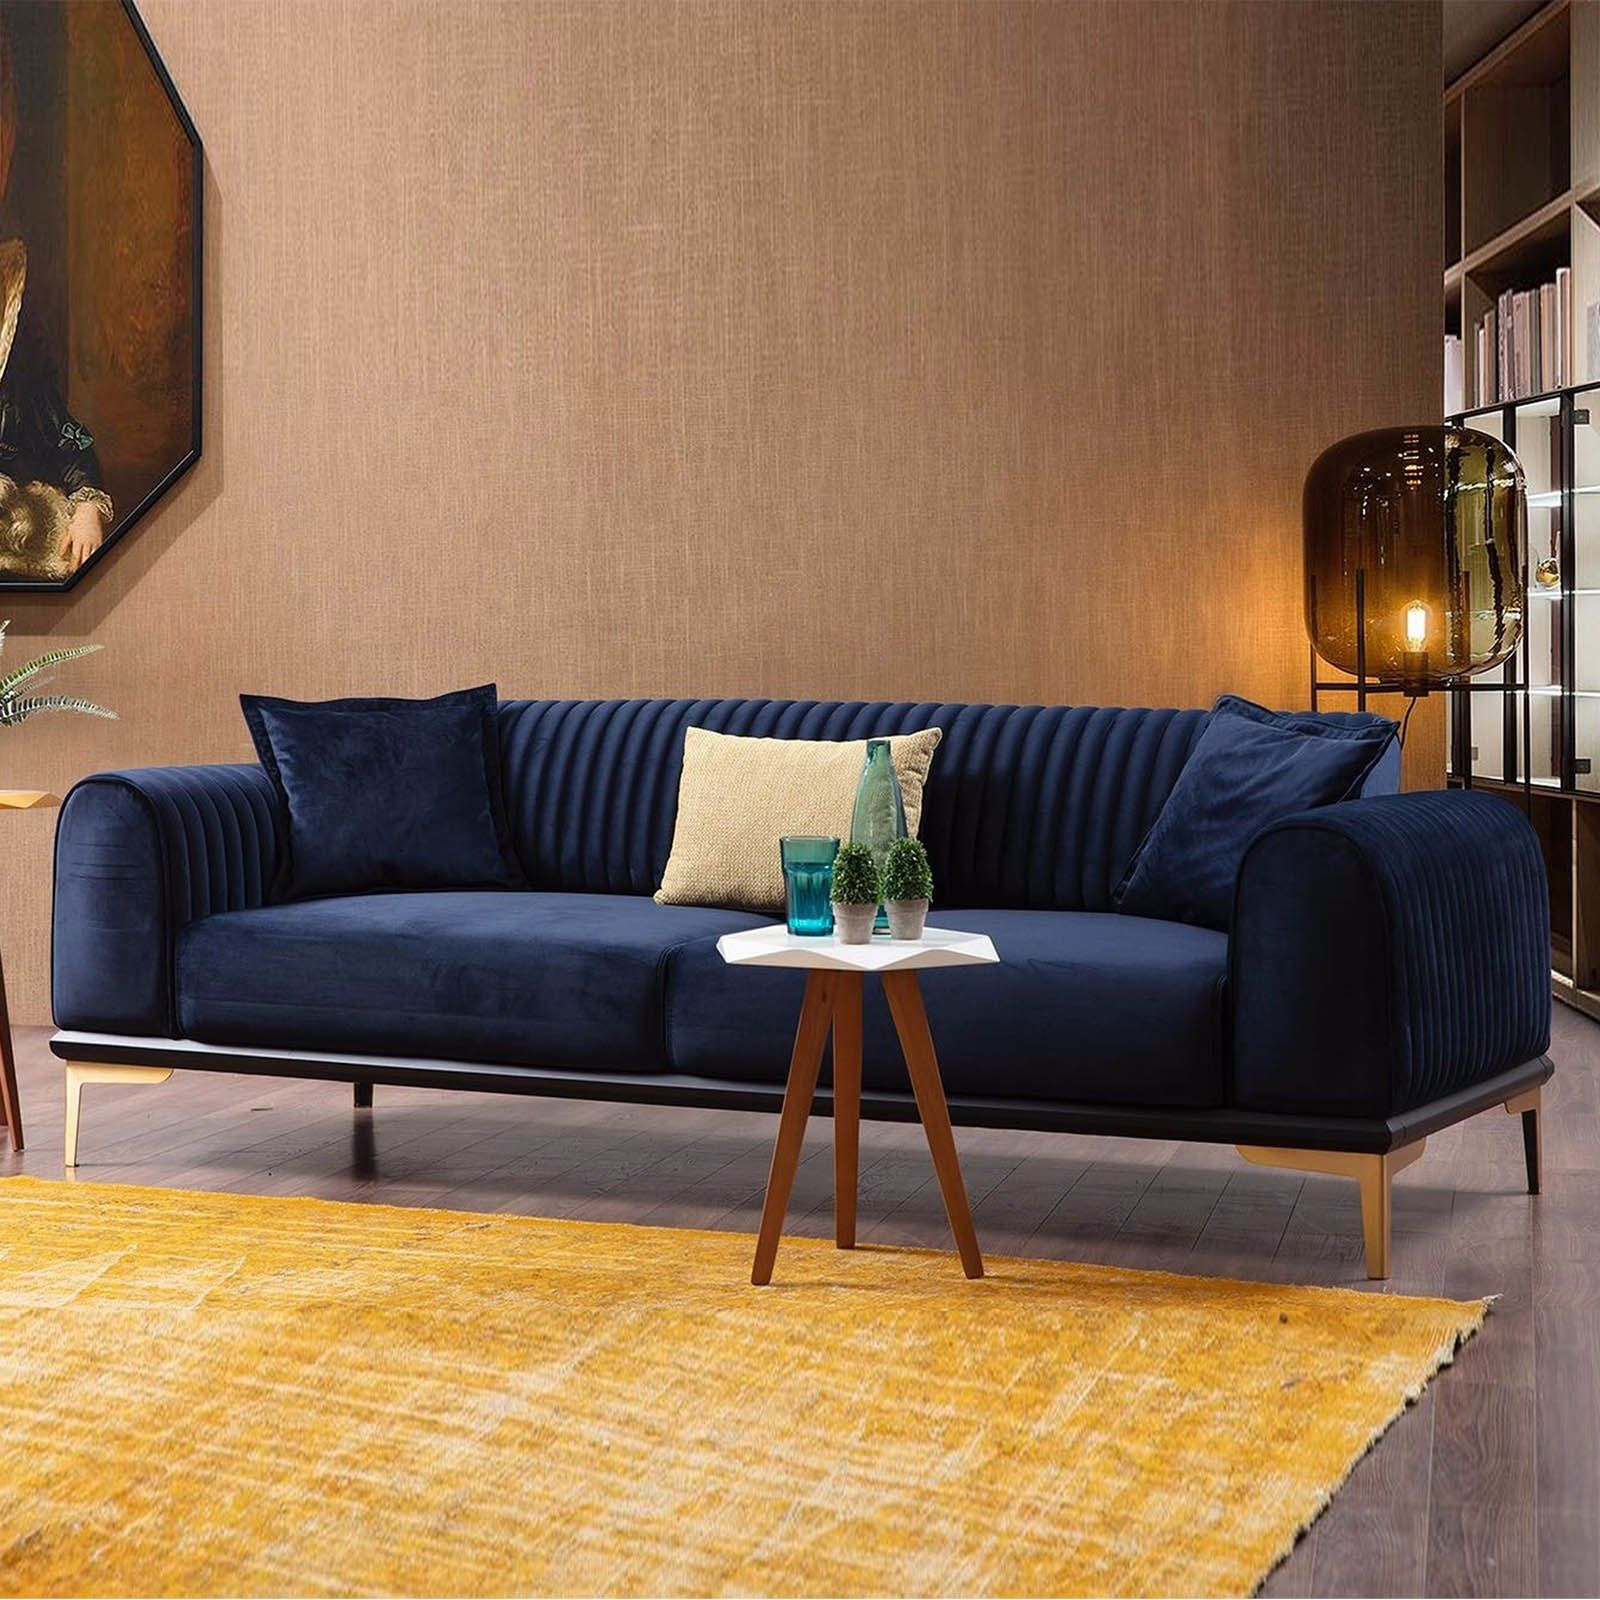 Nirvana 3 Seater Sofa Bed Nirv003 Blue Sofa Bed Design